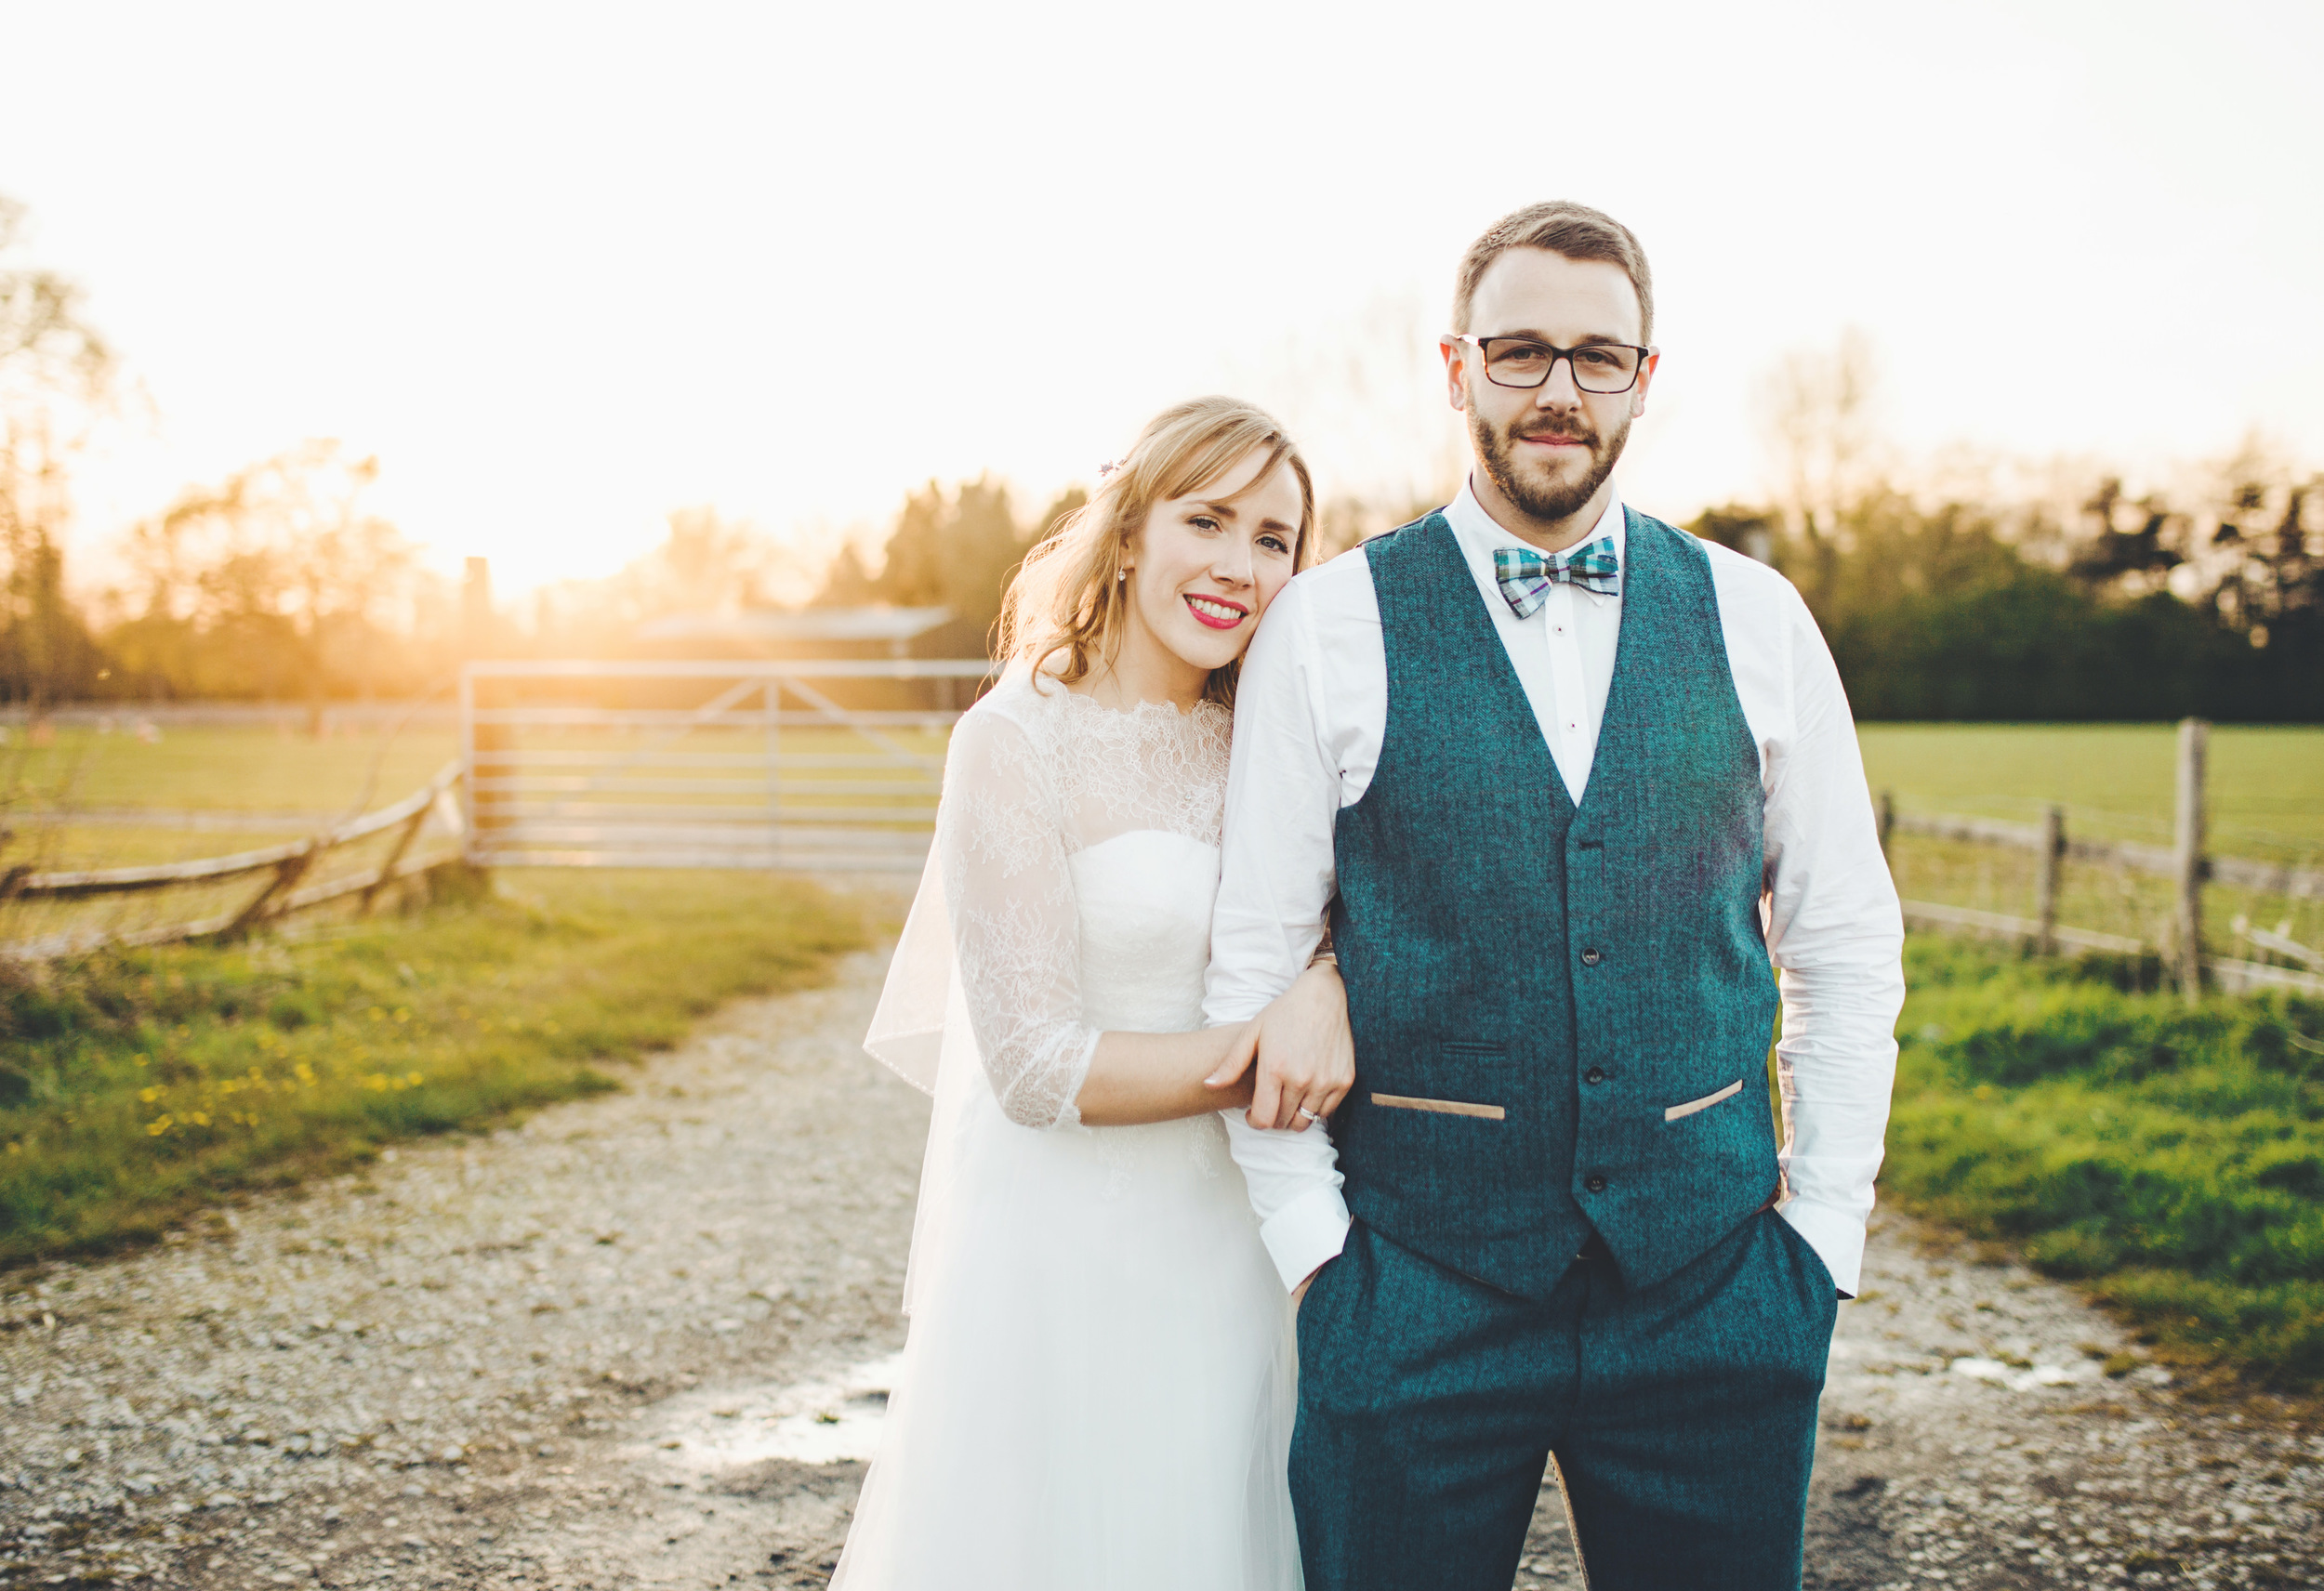 creative wedding photographer - sunset portraits